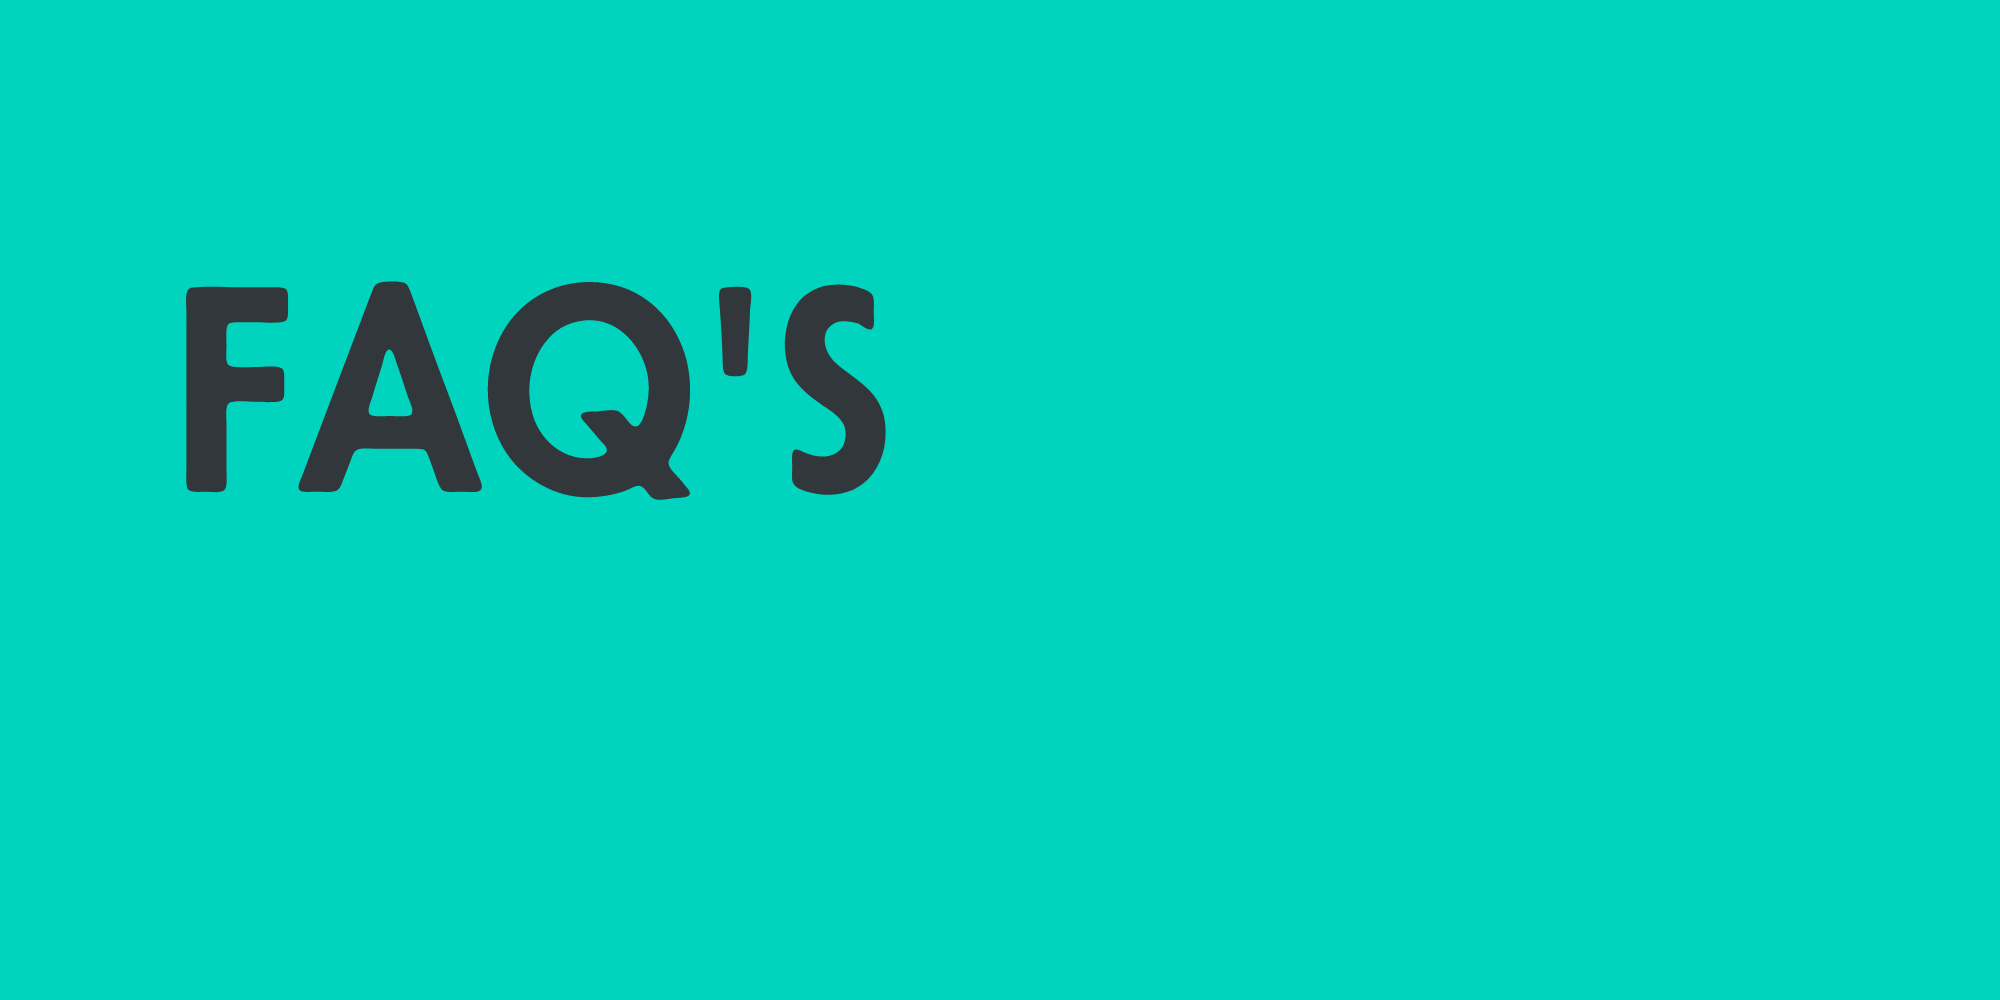 Checkout some frequently asked questions